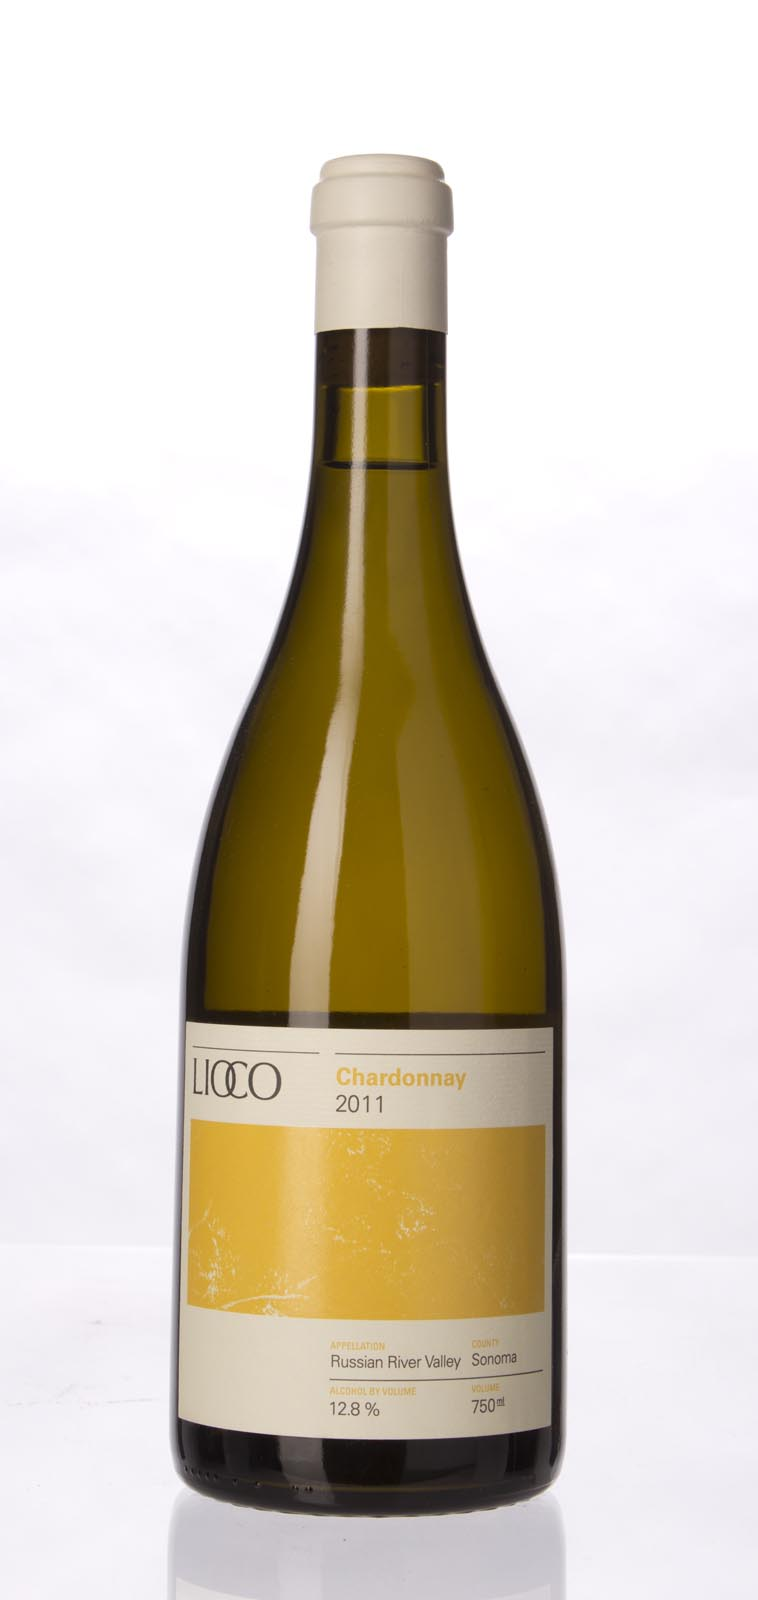 Lioco Chardonnay Russian River Valley 2011, 750mL (ST91) from The BPW - Merchants of rare and fine wines.